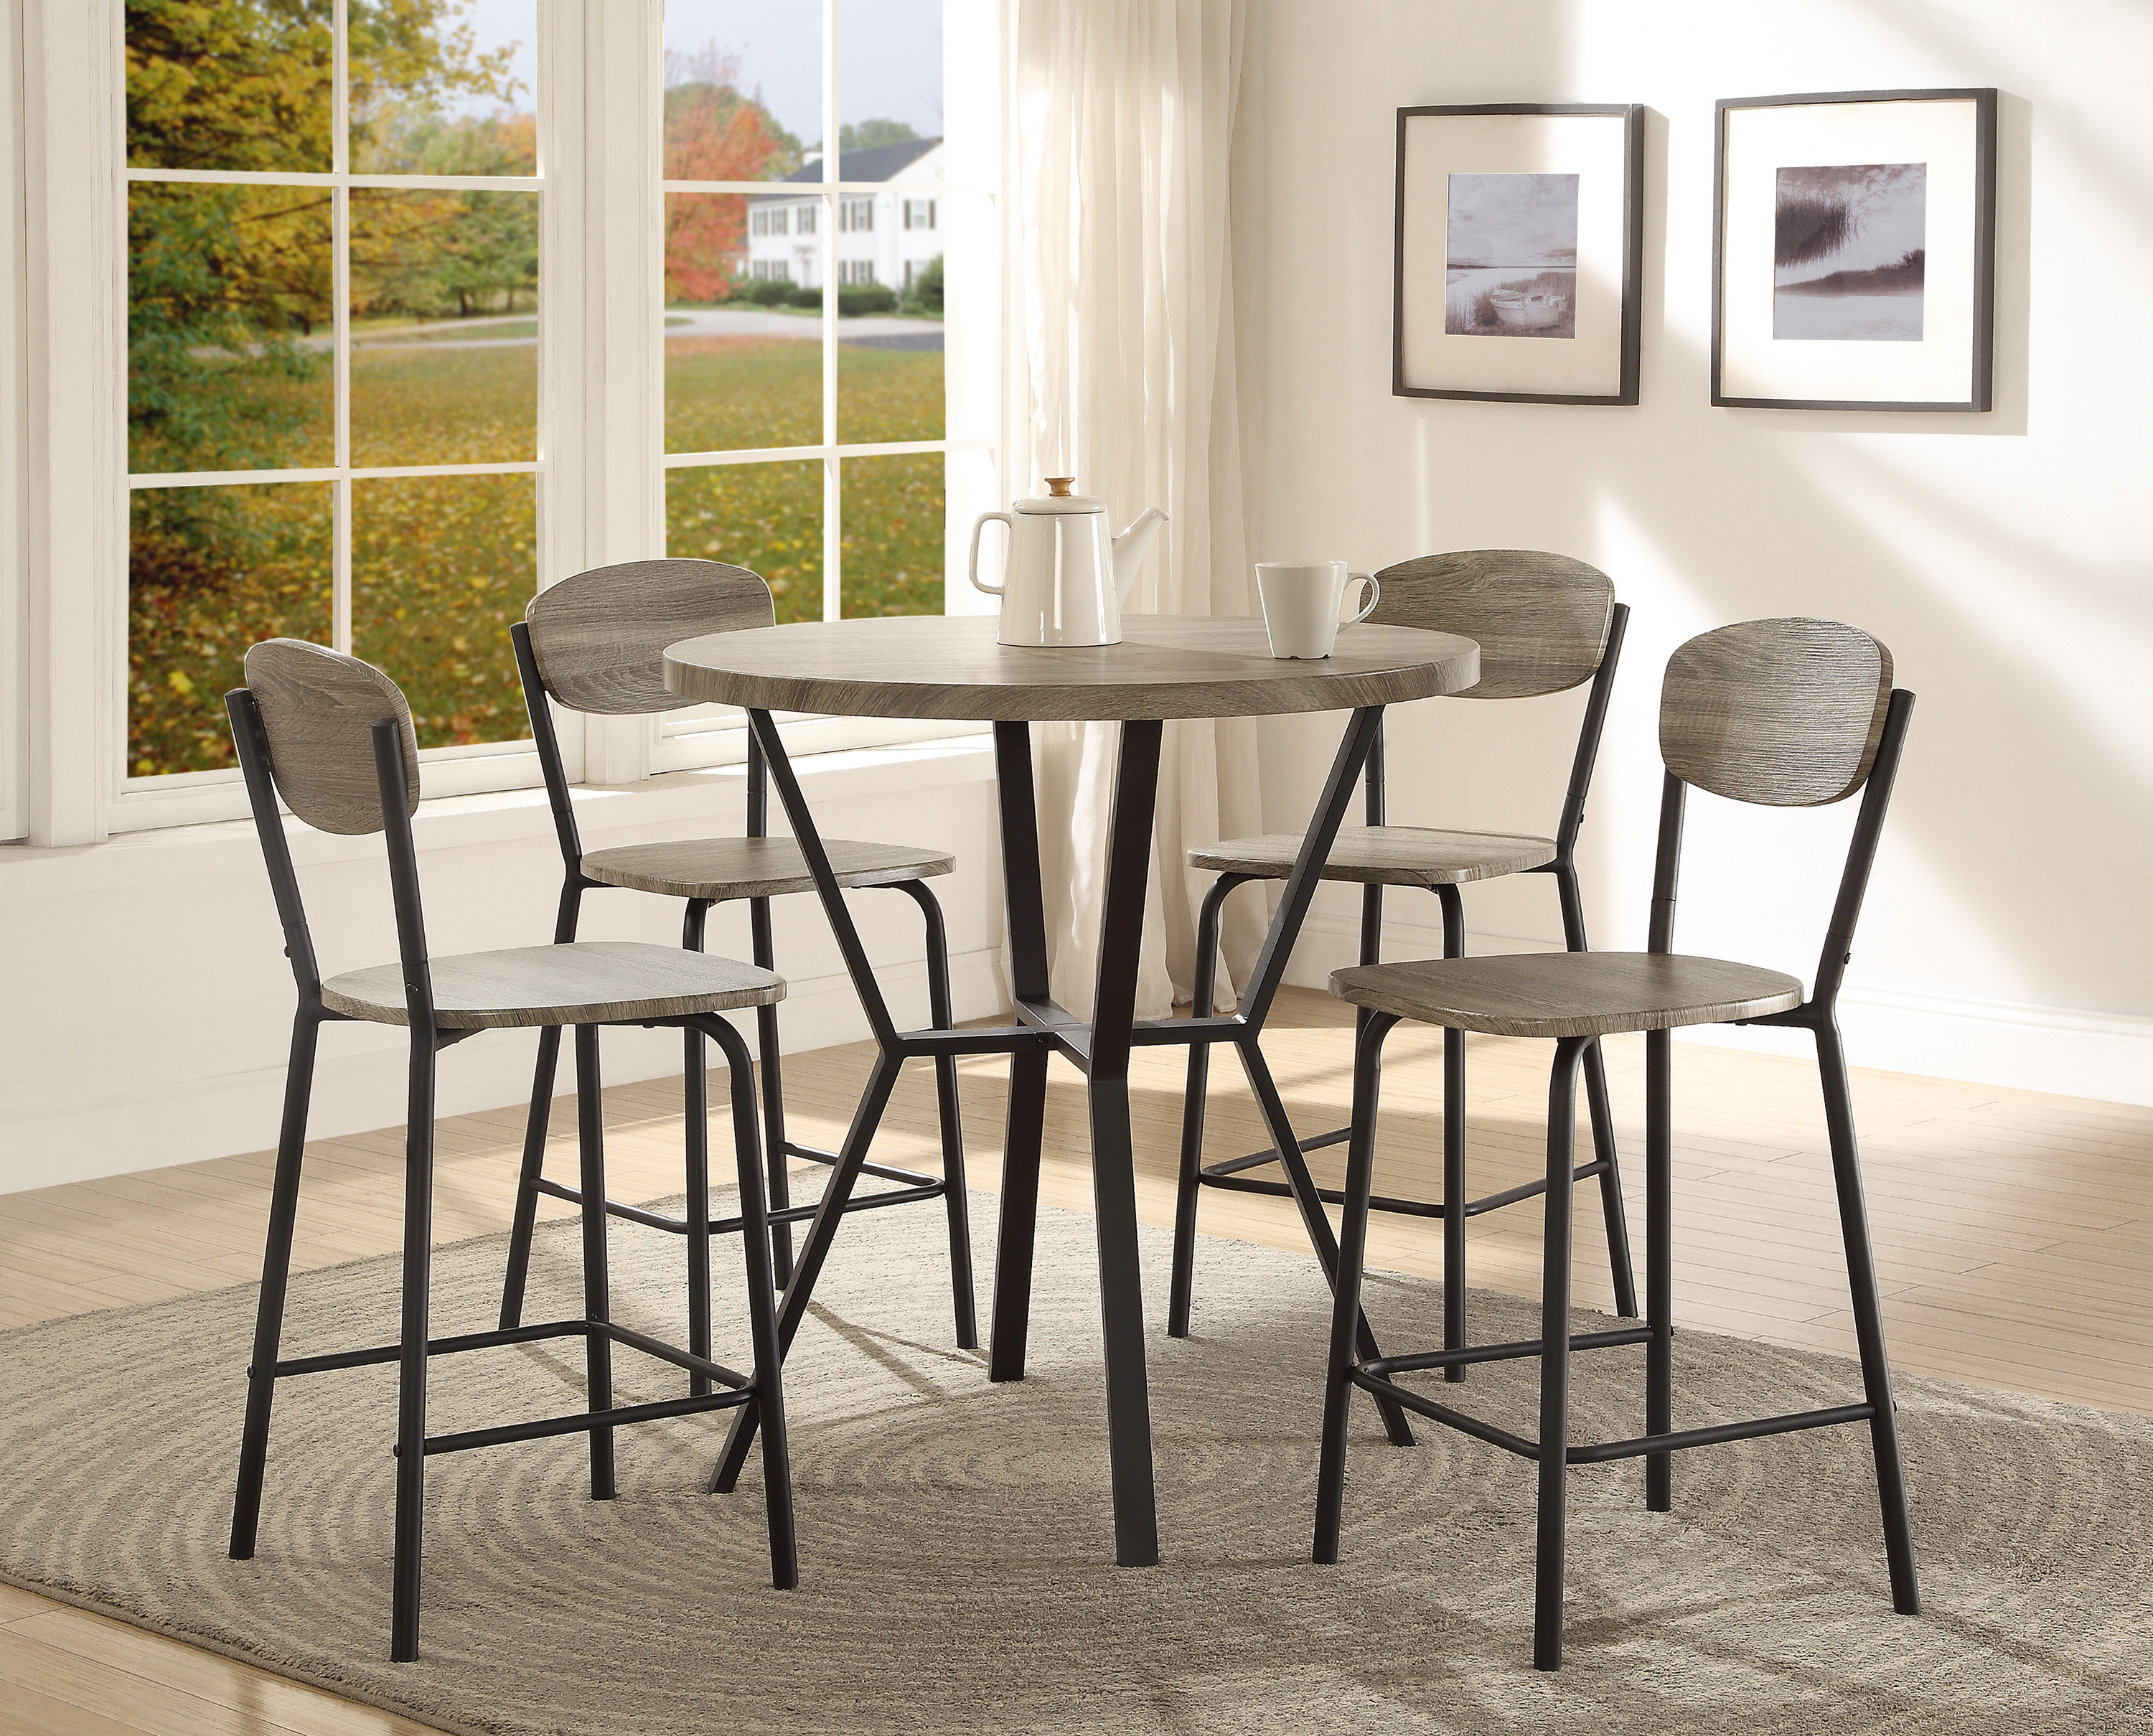 Millwood Pines Felicia 5 Piece Counter Height Dining Set & Reviews For Favorite Ephraim 5 Piece Dining Sets (View 12 of 25)